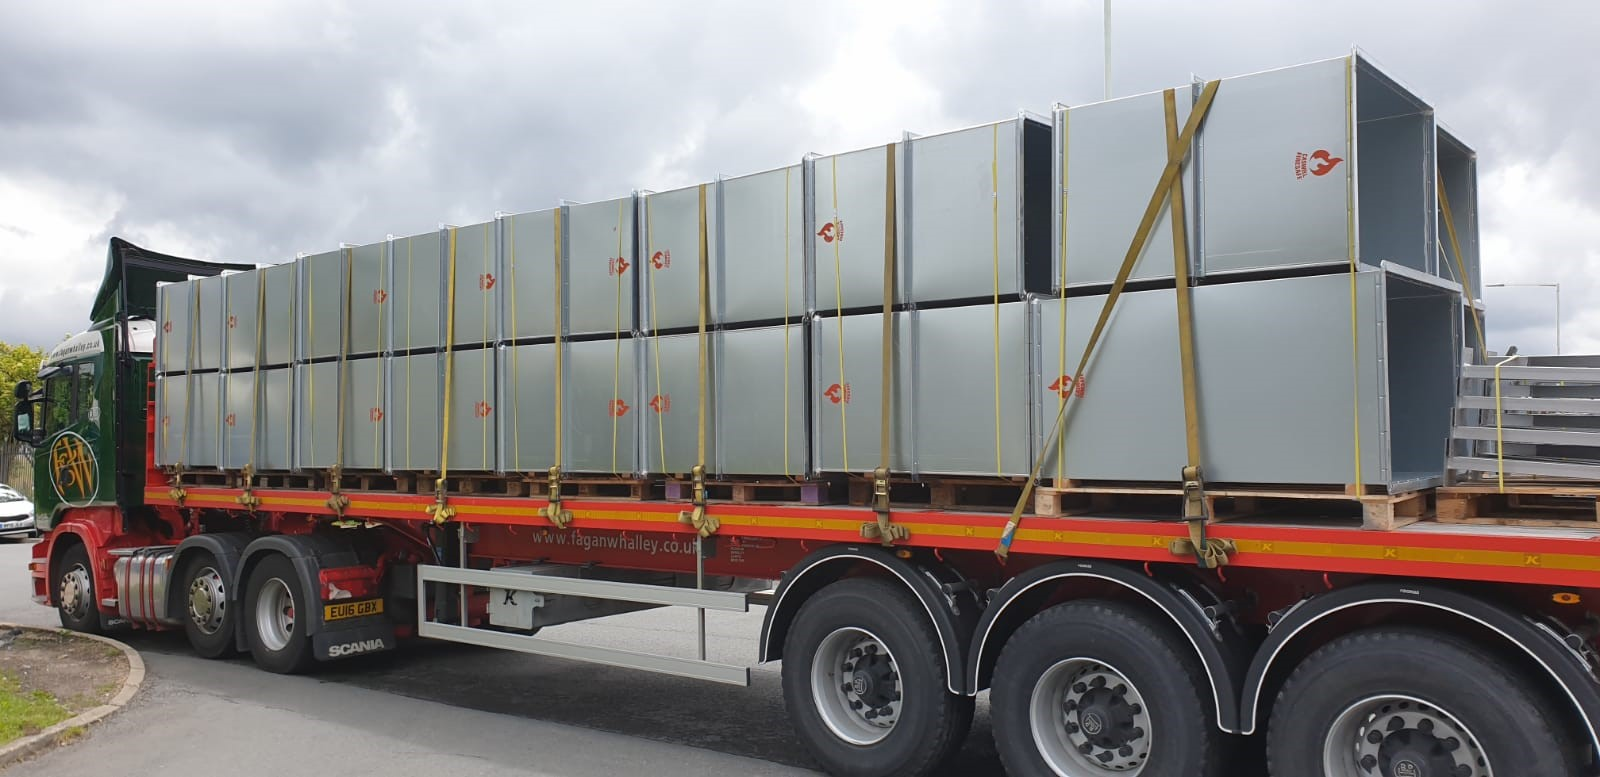 CASWELL FIRESAFE® ductwork on its way to Oxygen Towers project Piccadilly, Manchester